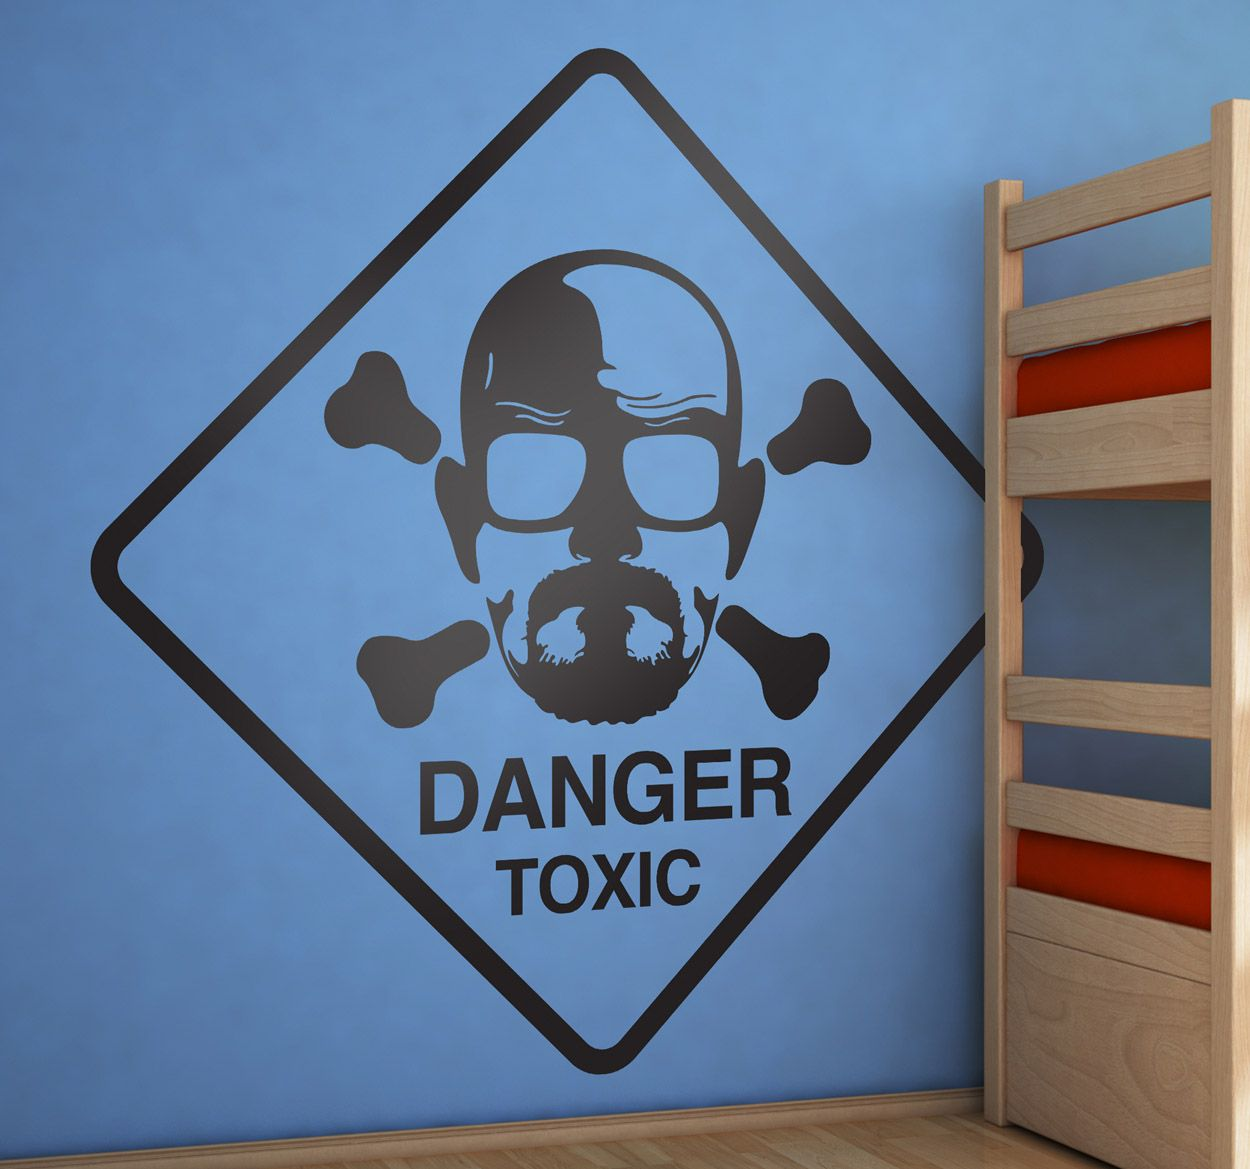 A toxic warning with the face of Heisenberg, star of the hit series breaking bad. #BreakingBad #Series #Stickers